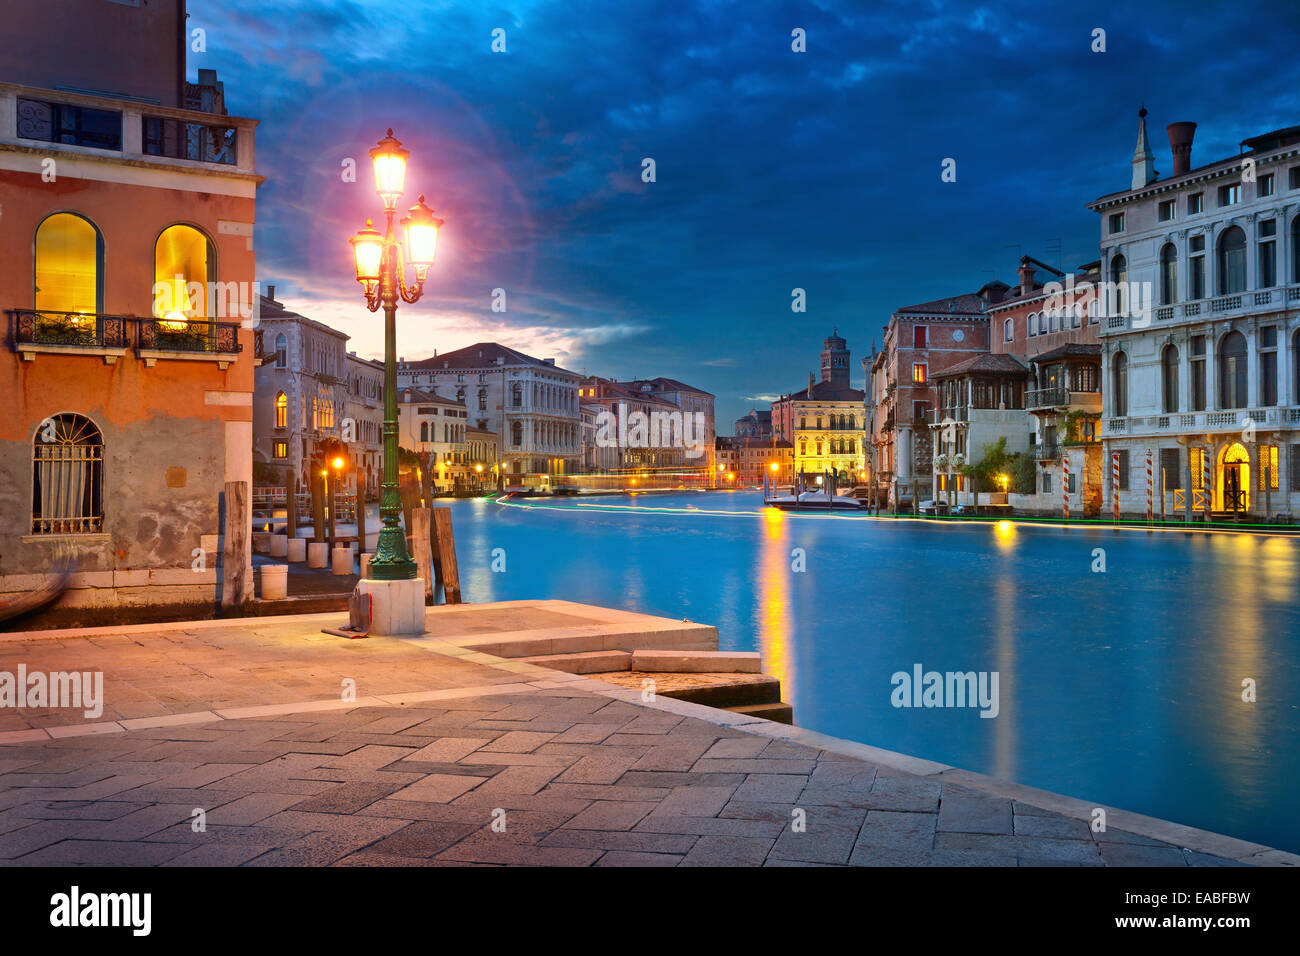 grand canal stockfotos grand canal bilder alamy. Black Bedroom Furniture Sets. Home Design Ideas